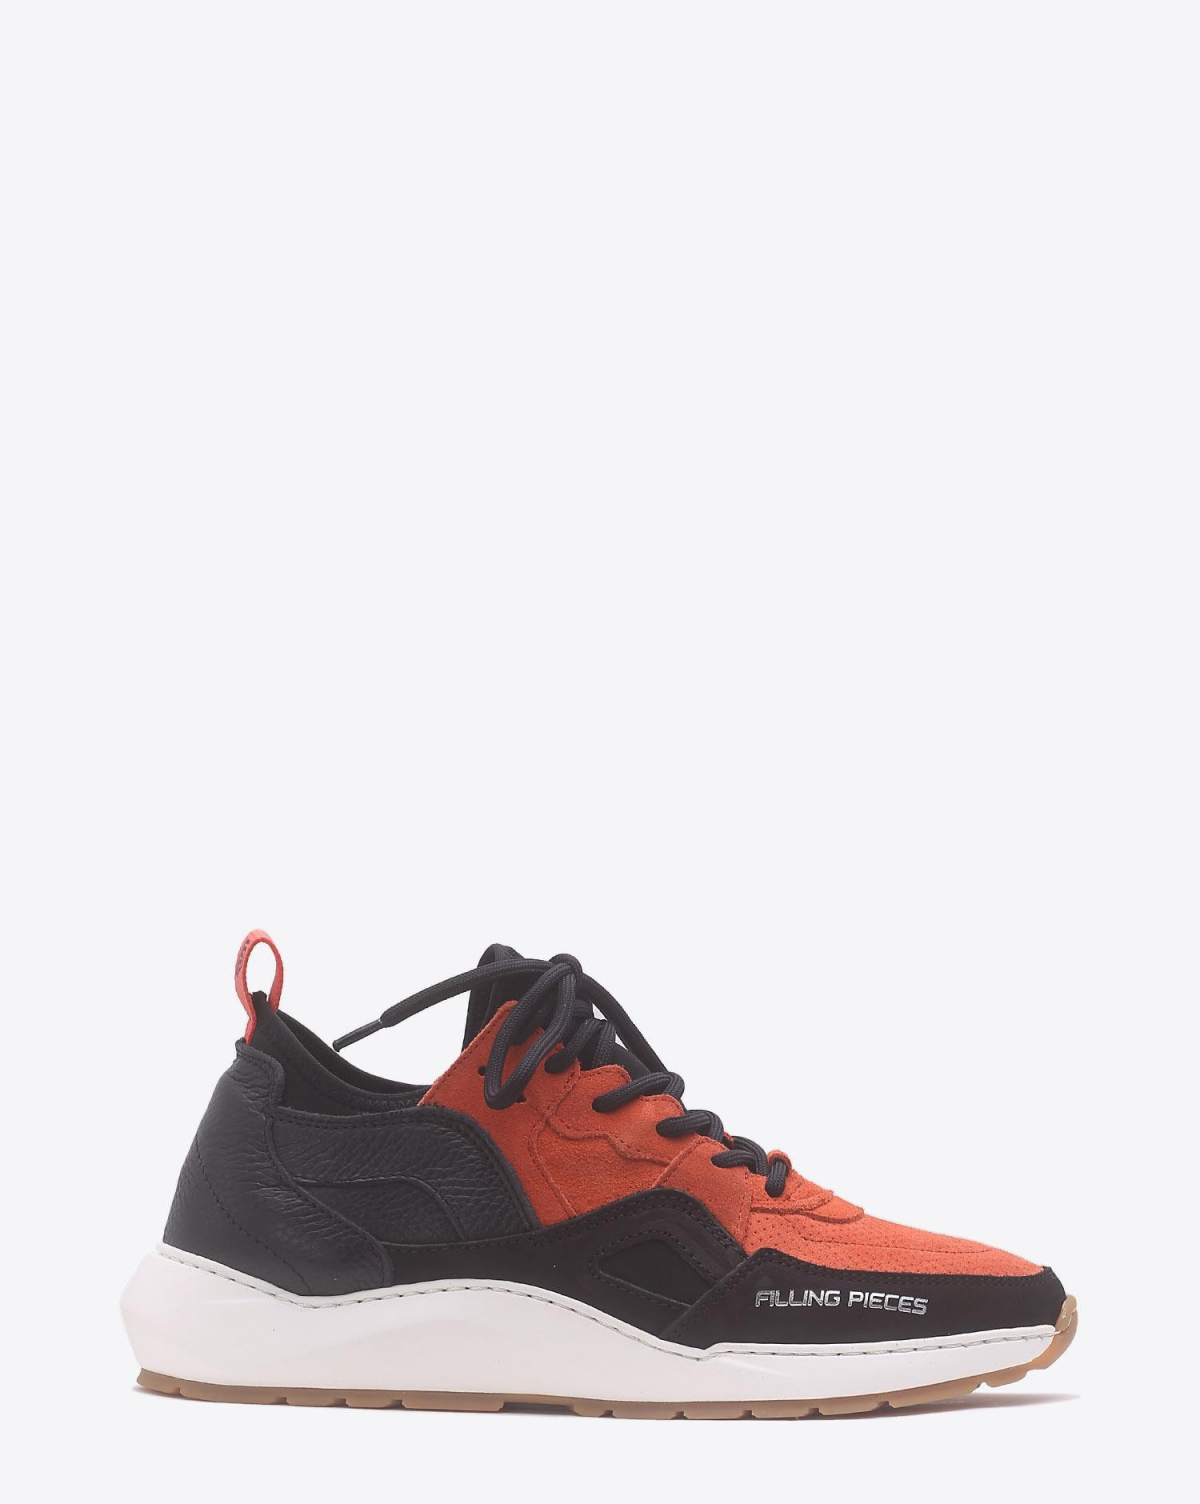 Filling Pieces Sneakers Atlantis Origin Low Arch Runner Republic Orange   Orange